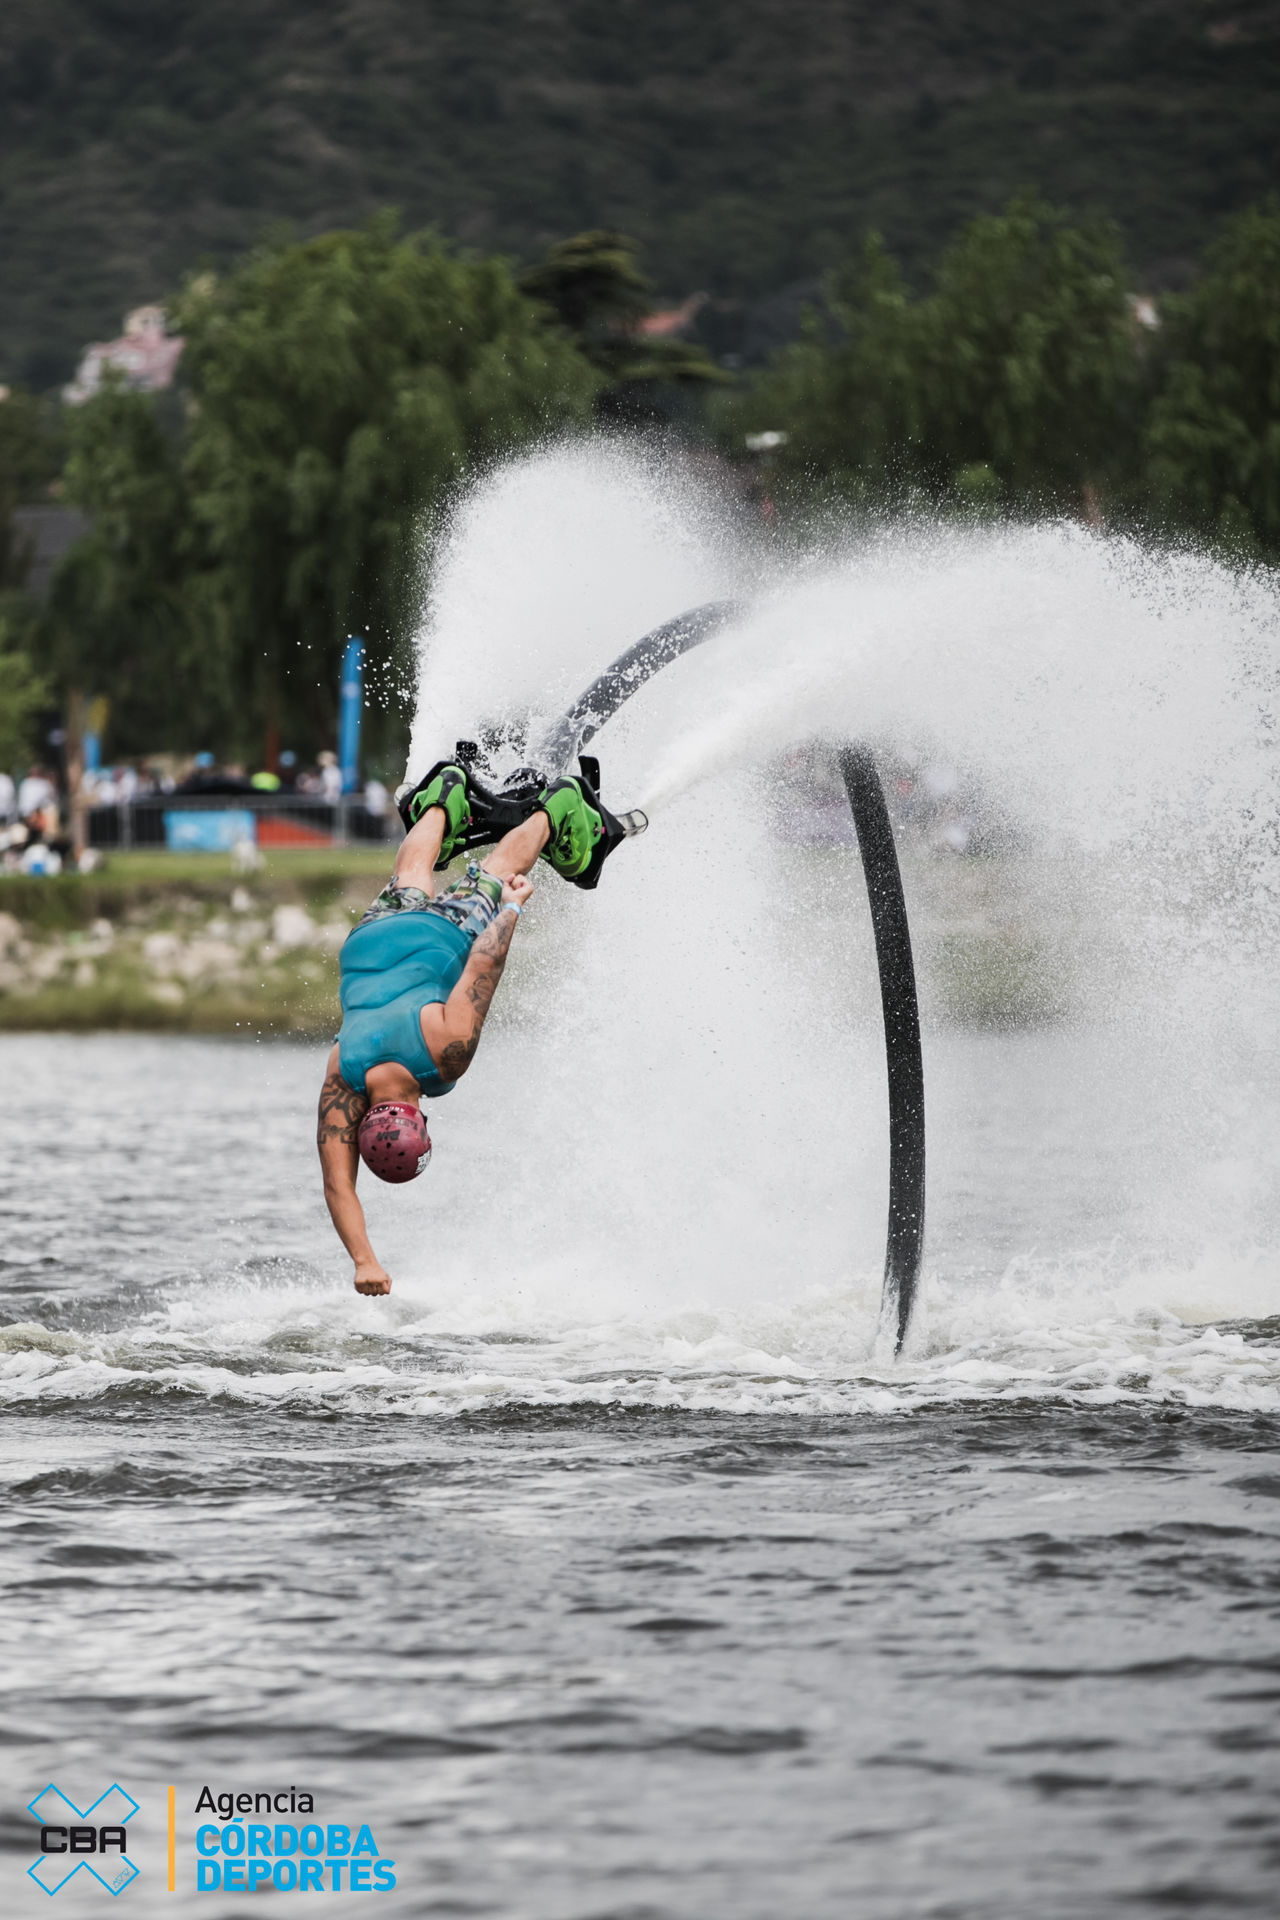 Adventure Day Enjoyment Extreme Sports Flyboard Flyboard, Flyboard, Cbax Flyboard, Cbax, Full Length Fun Leisure Activity Lifestyles Men Mid-air Motion Nature One Person Outdoors Real People Speed Splashing Spraying Stunt Water Waterfront